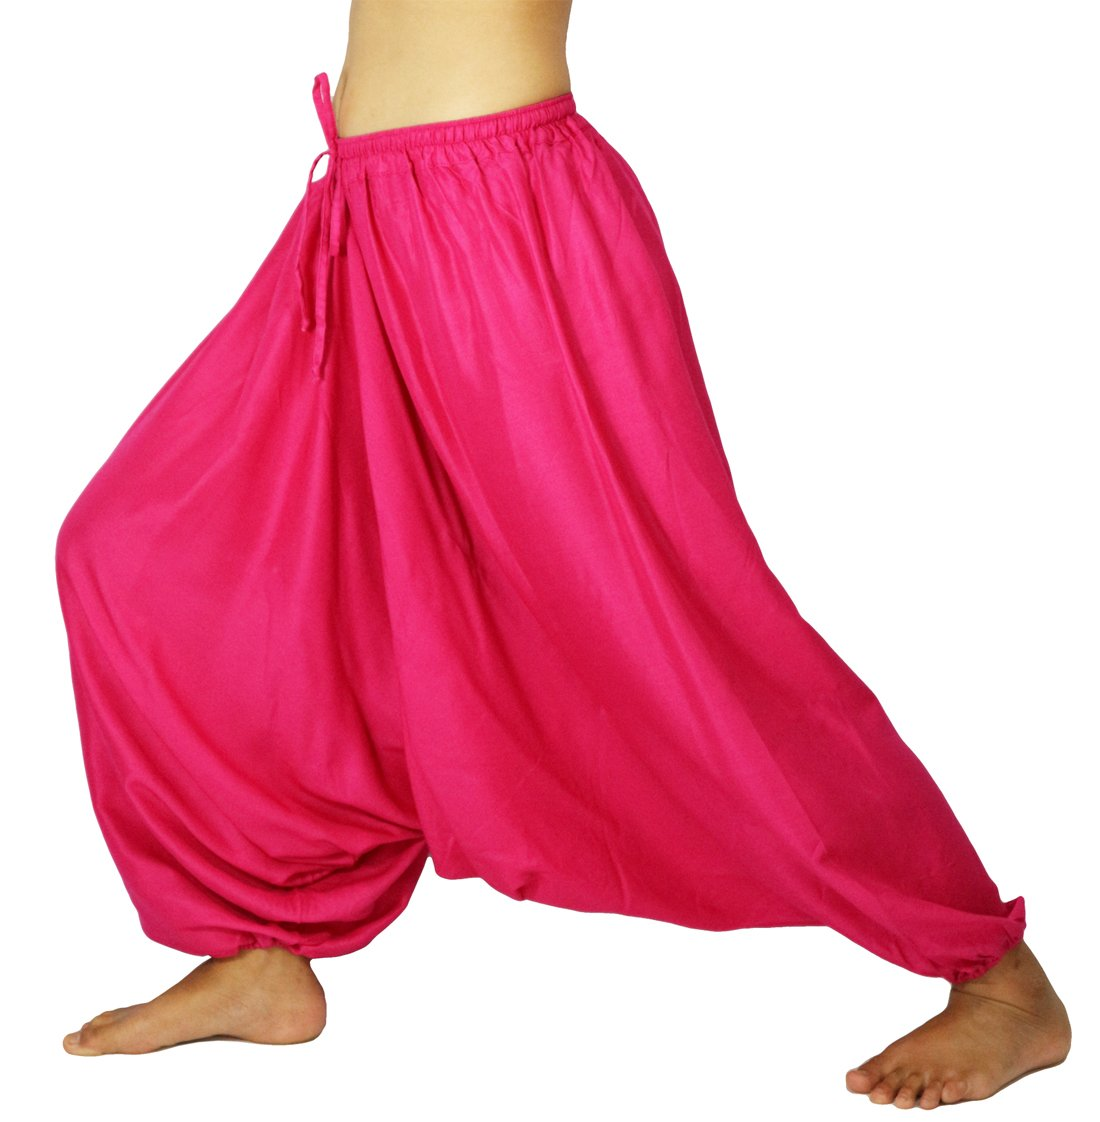 Lovely Creations Unisex Plus Size Baggy Aladdin Hippie Yoga Harem Casual Pants(HC Pink),US size 4-14